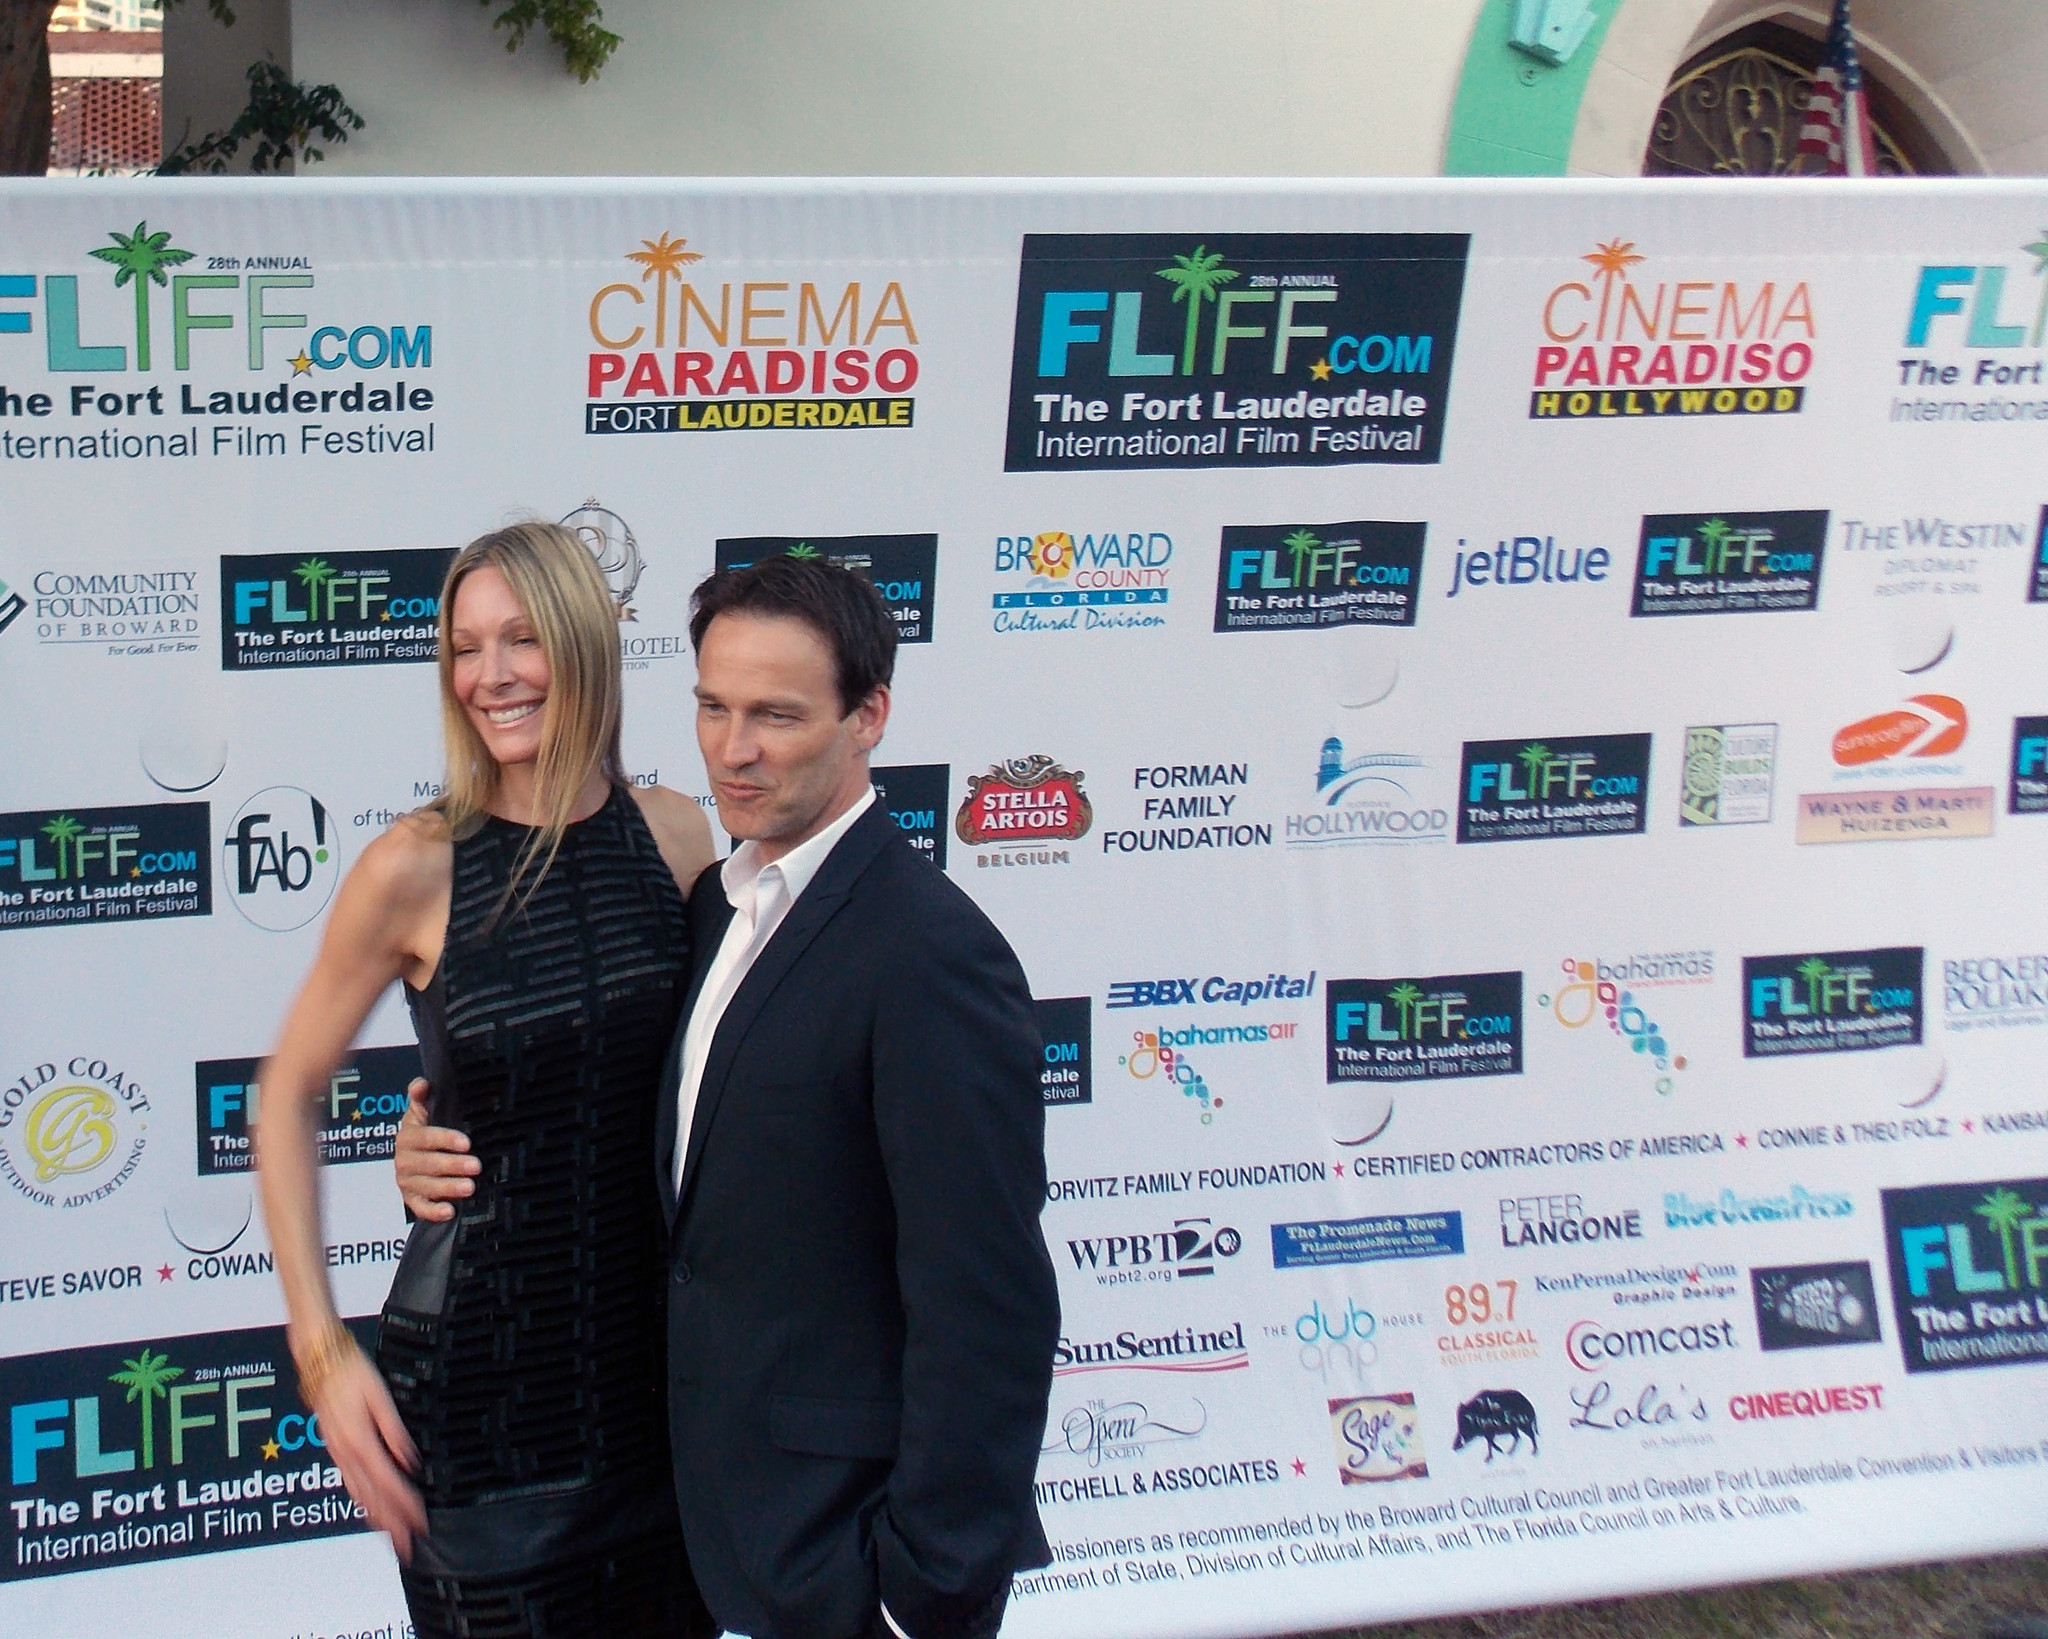 FLIFF opening night - Shana Betz and Stephen Moyer